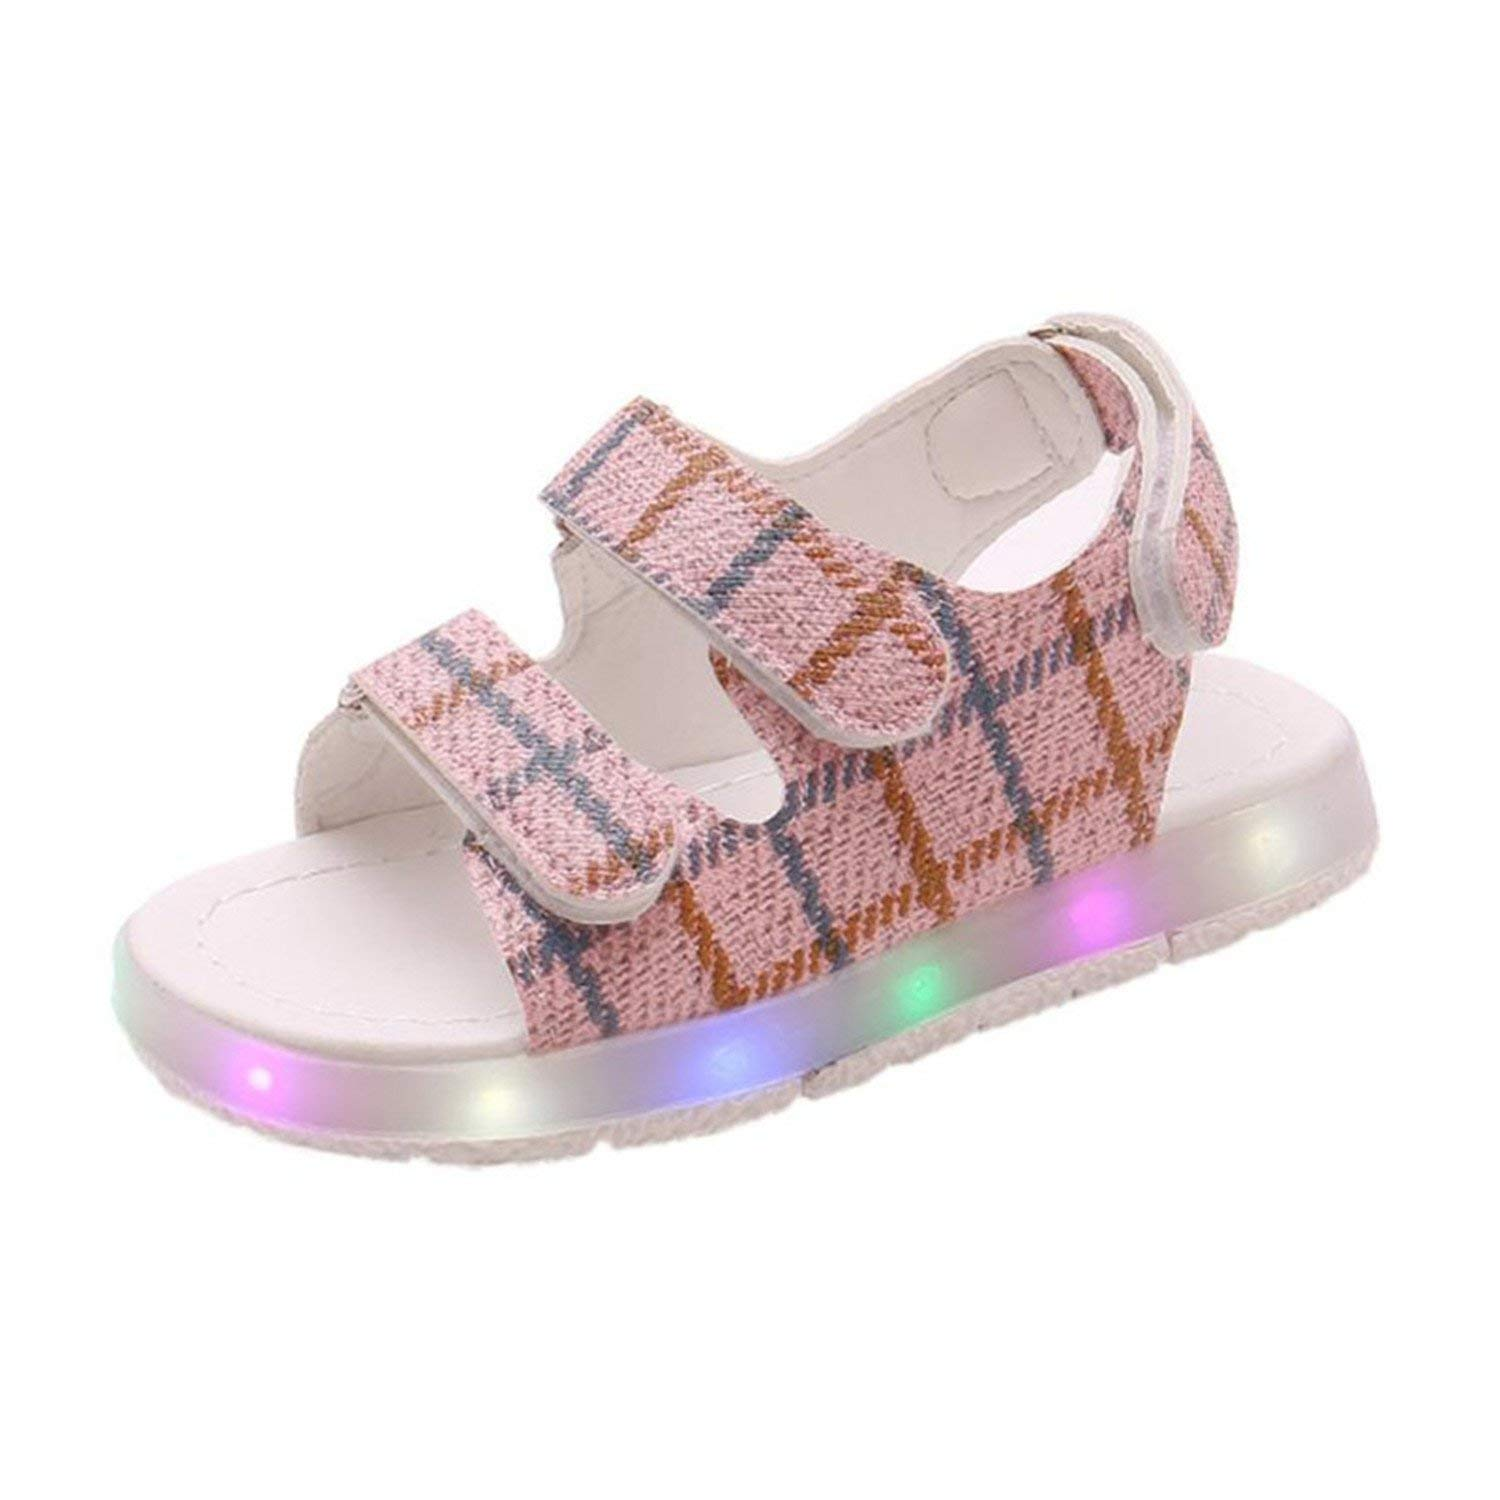 Toddler Kids Sport Summer Boys Girls Baby Sandals LED Luminous Shoes Sneakers Flip Flops Flat Heels Soft S3APR18